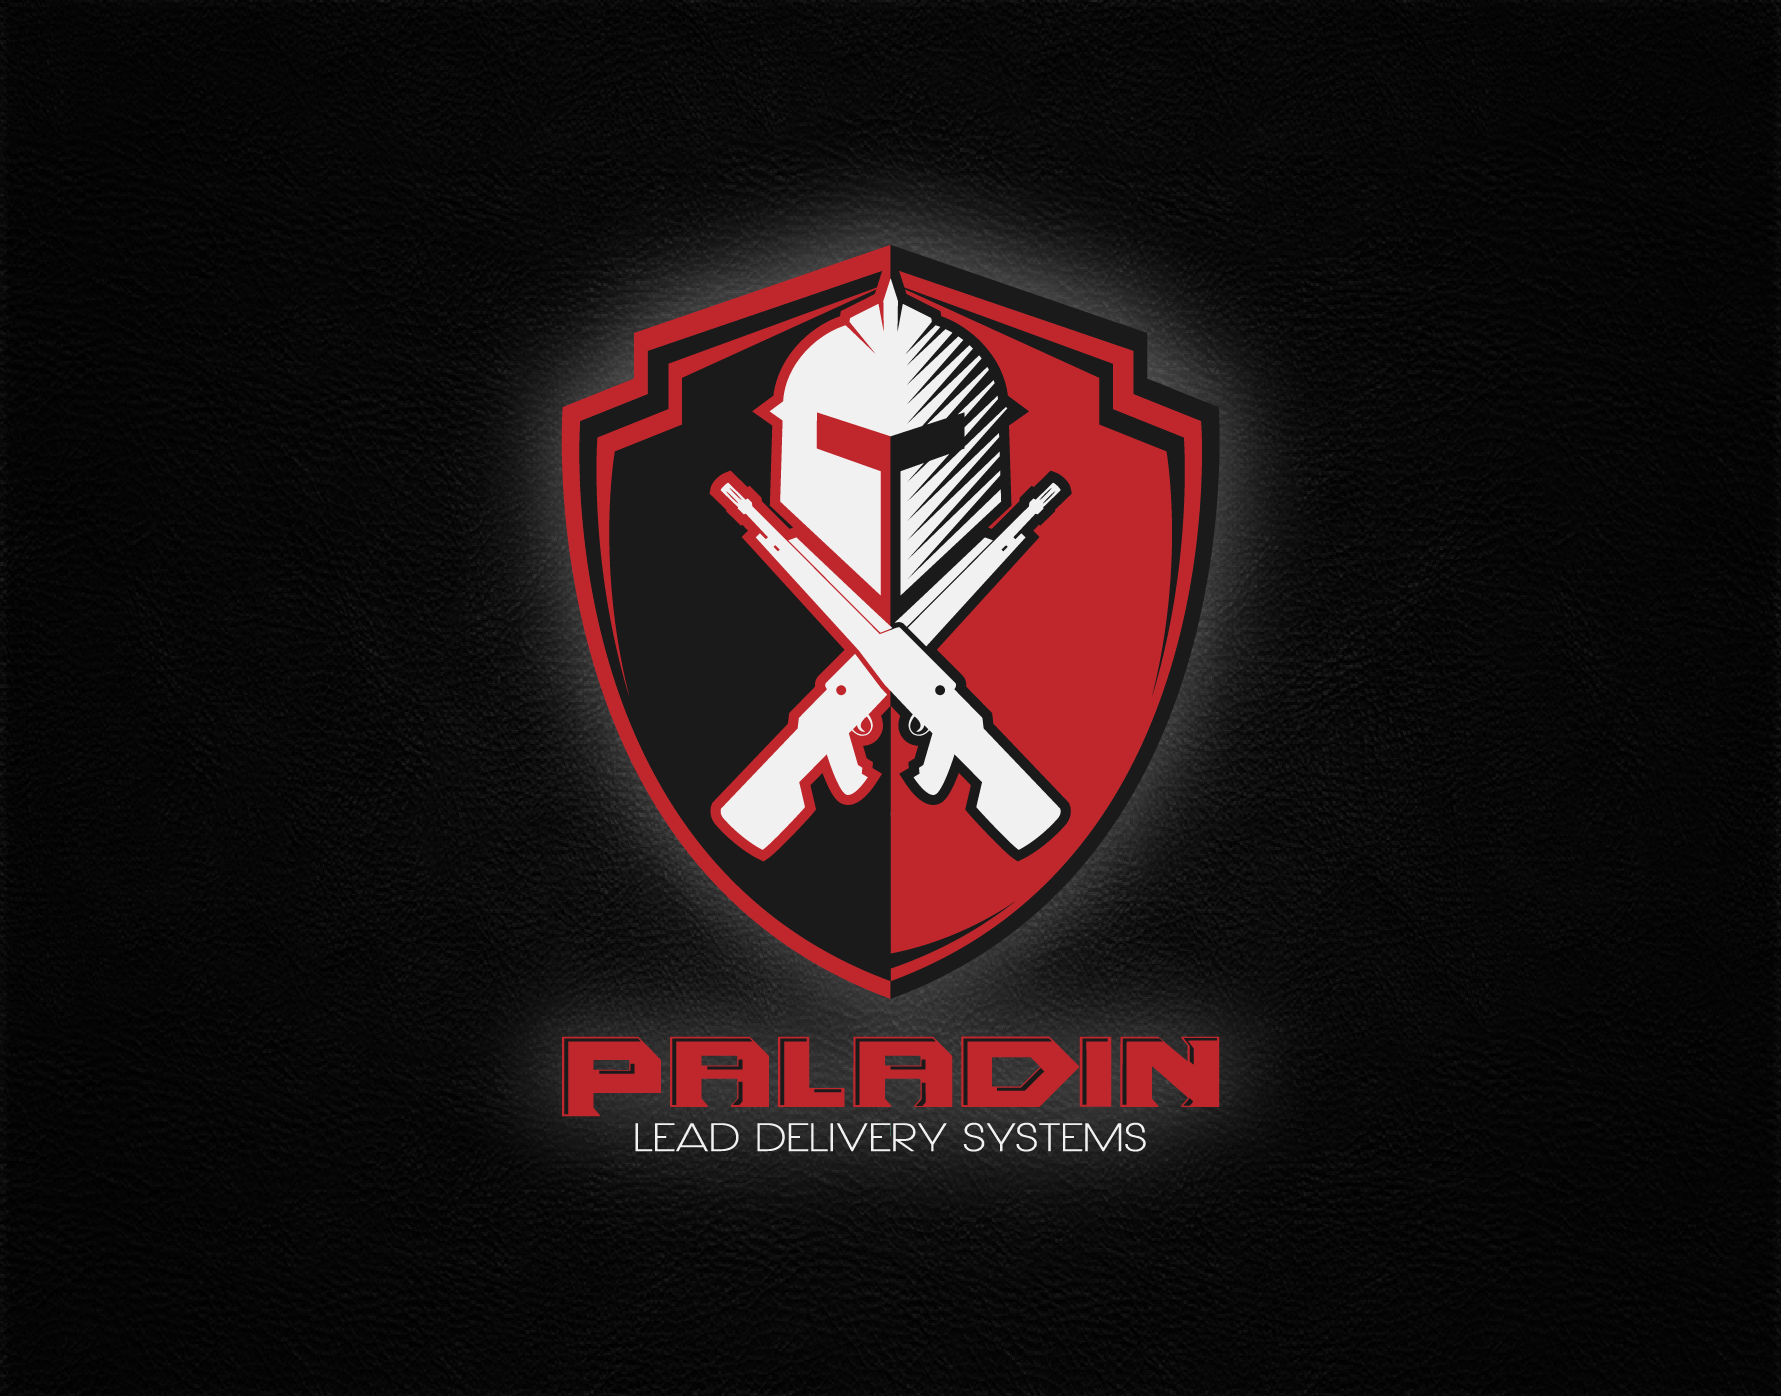 Help Paladin Lead Delivery Systems with a new logo